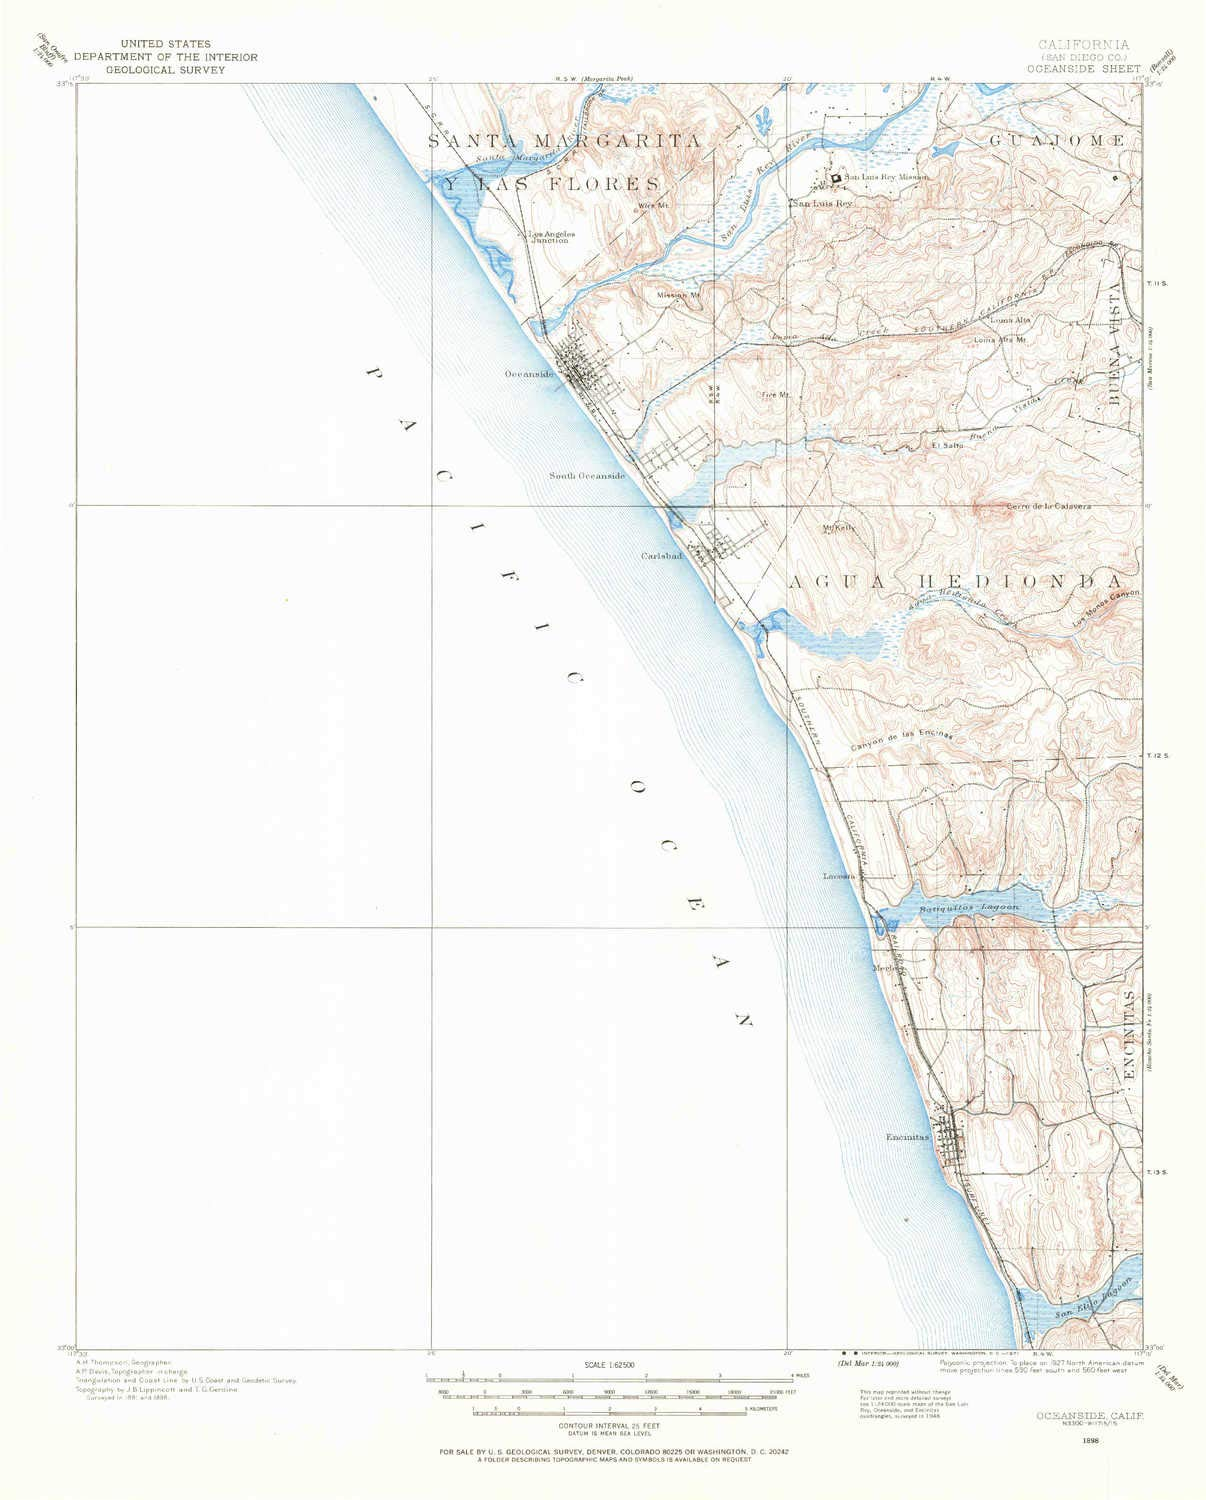 Updated 1971 YellowMaps Oceanside CA topo map 20.7 x 16.6 in 15 X 15 Minute 1898 1:62500 Scale Historical